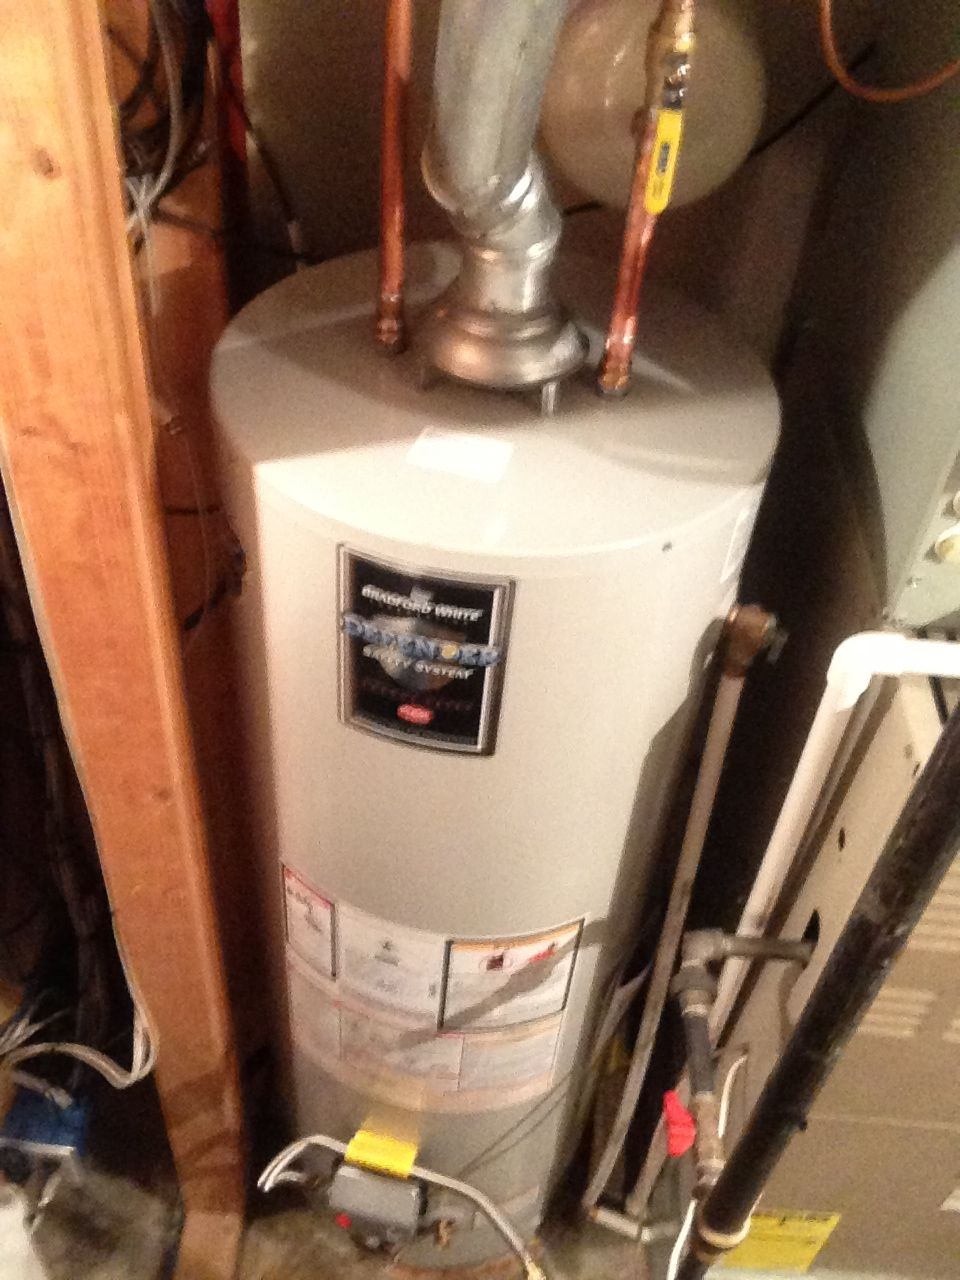 Hot water heater installed in overland park kansas water heaters